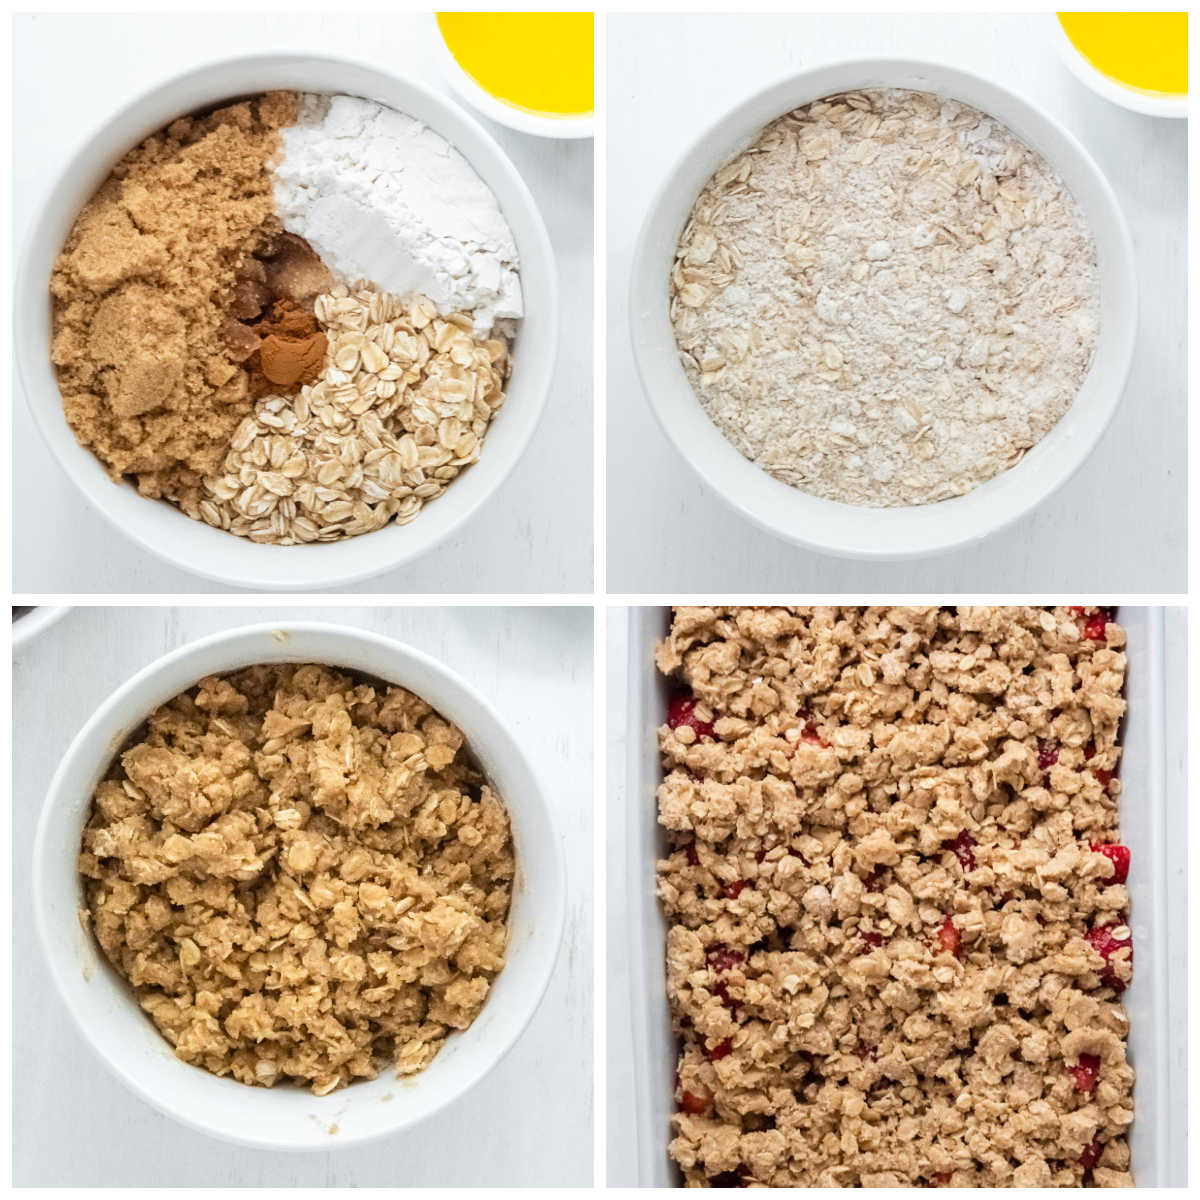 oats, flour, brown sugar and butter being mixed together in a white bowl and crumbs put over strawberries